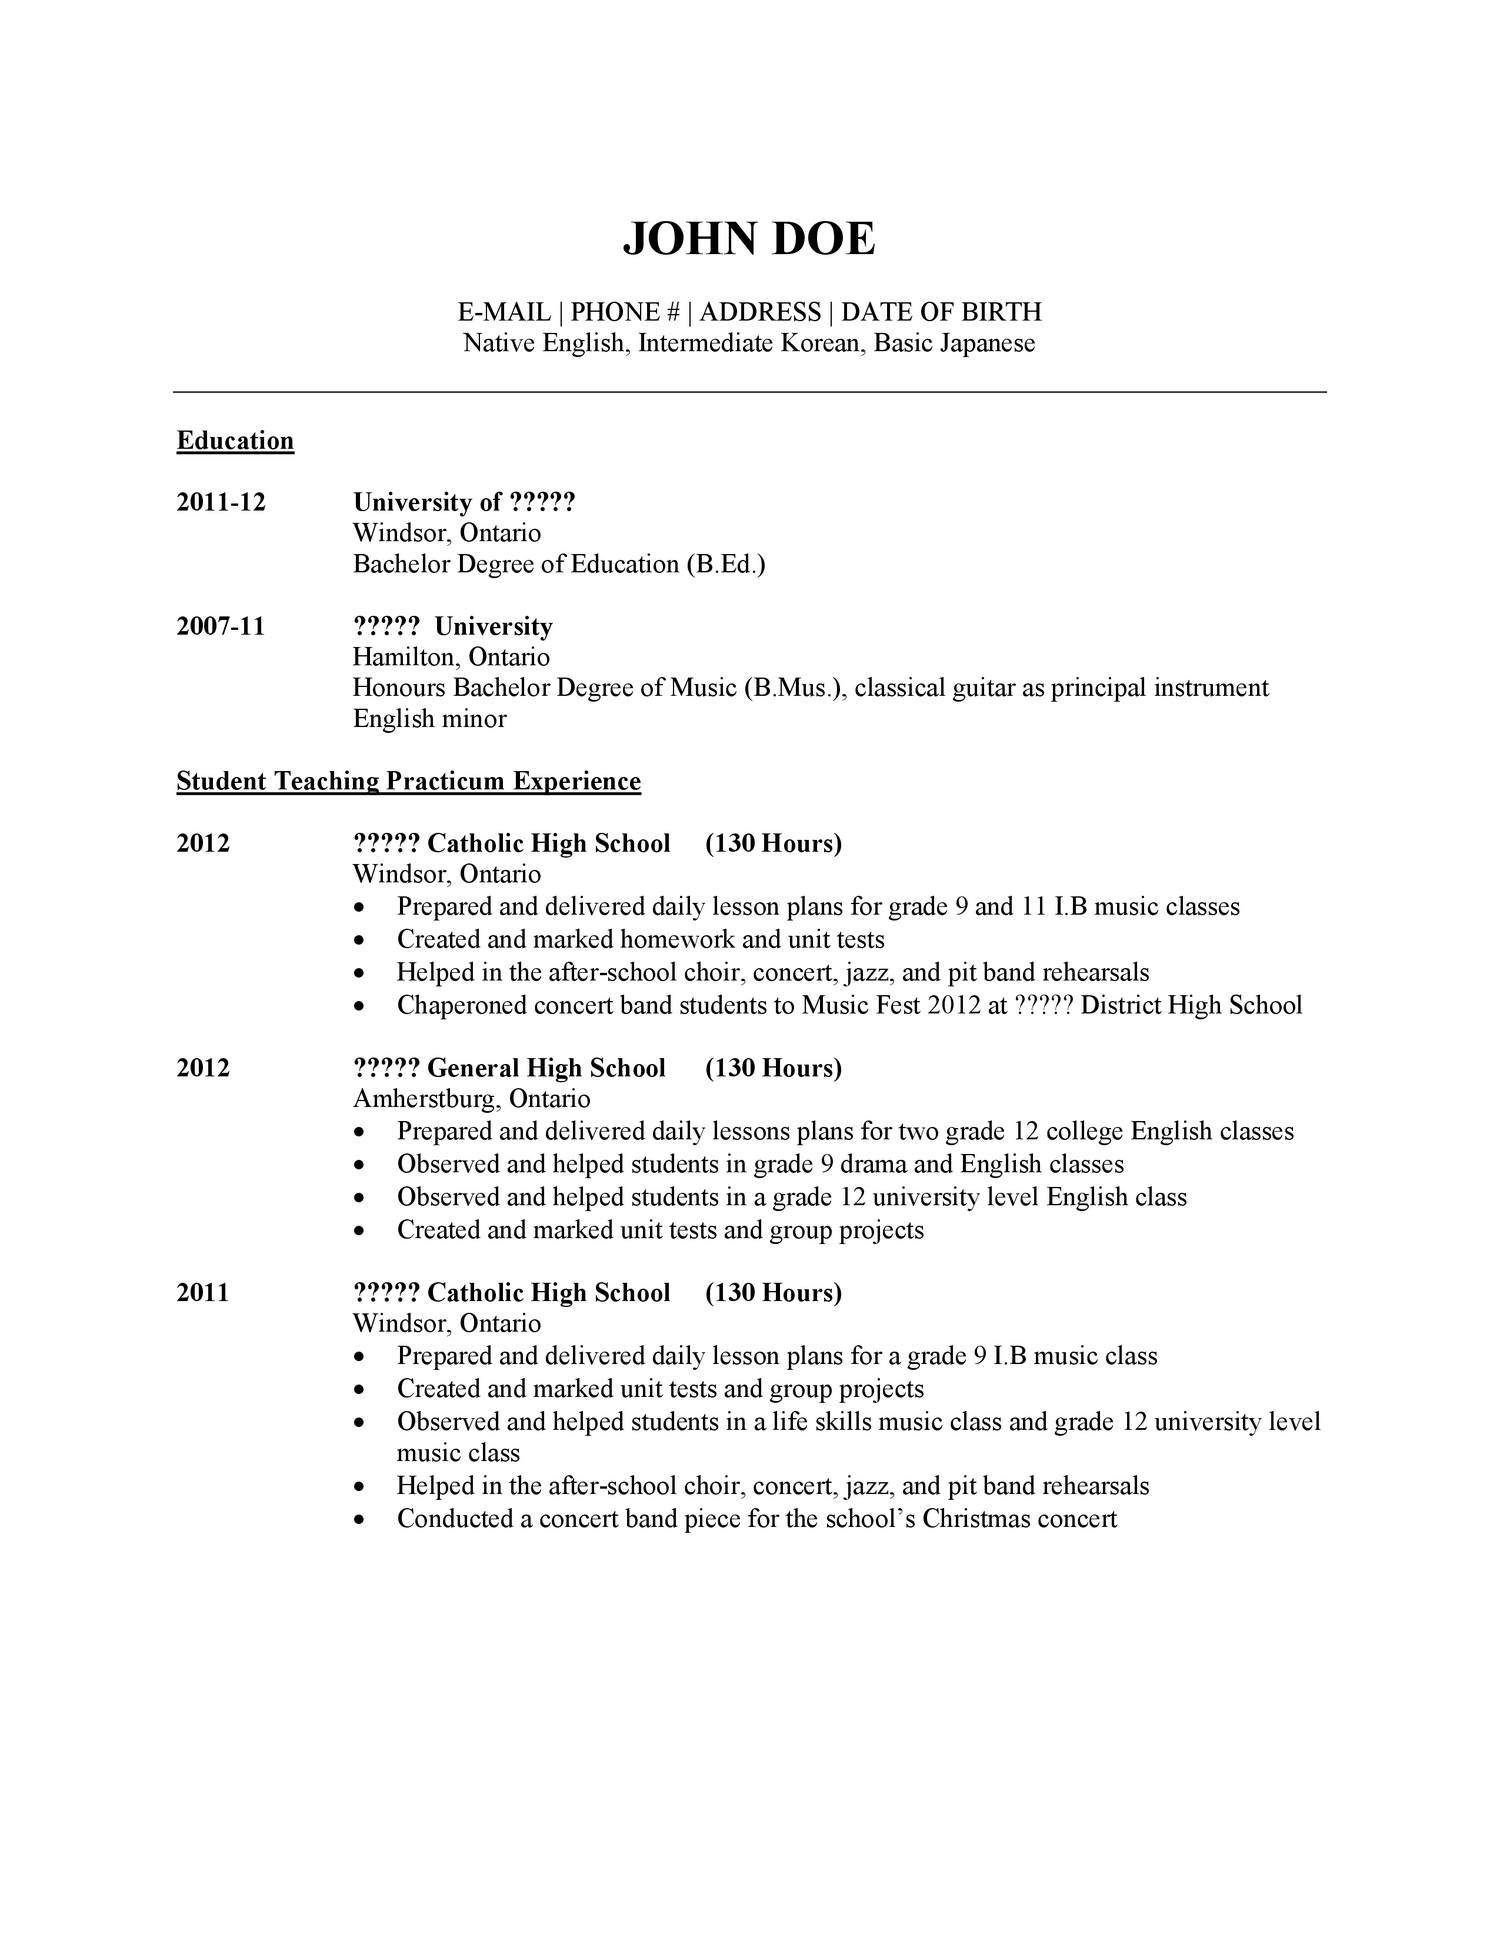 English Teacher Resume.pdf - DocDroid